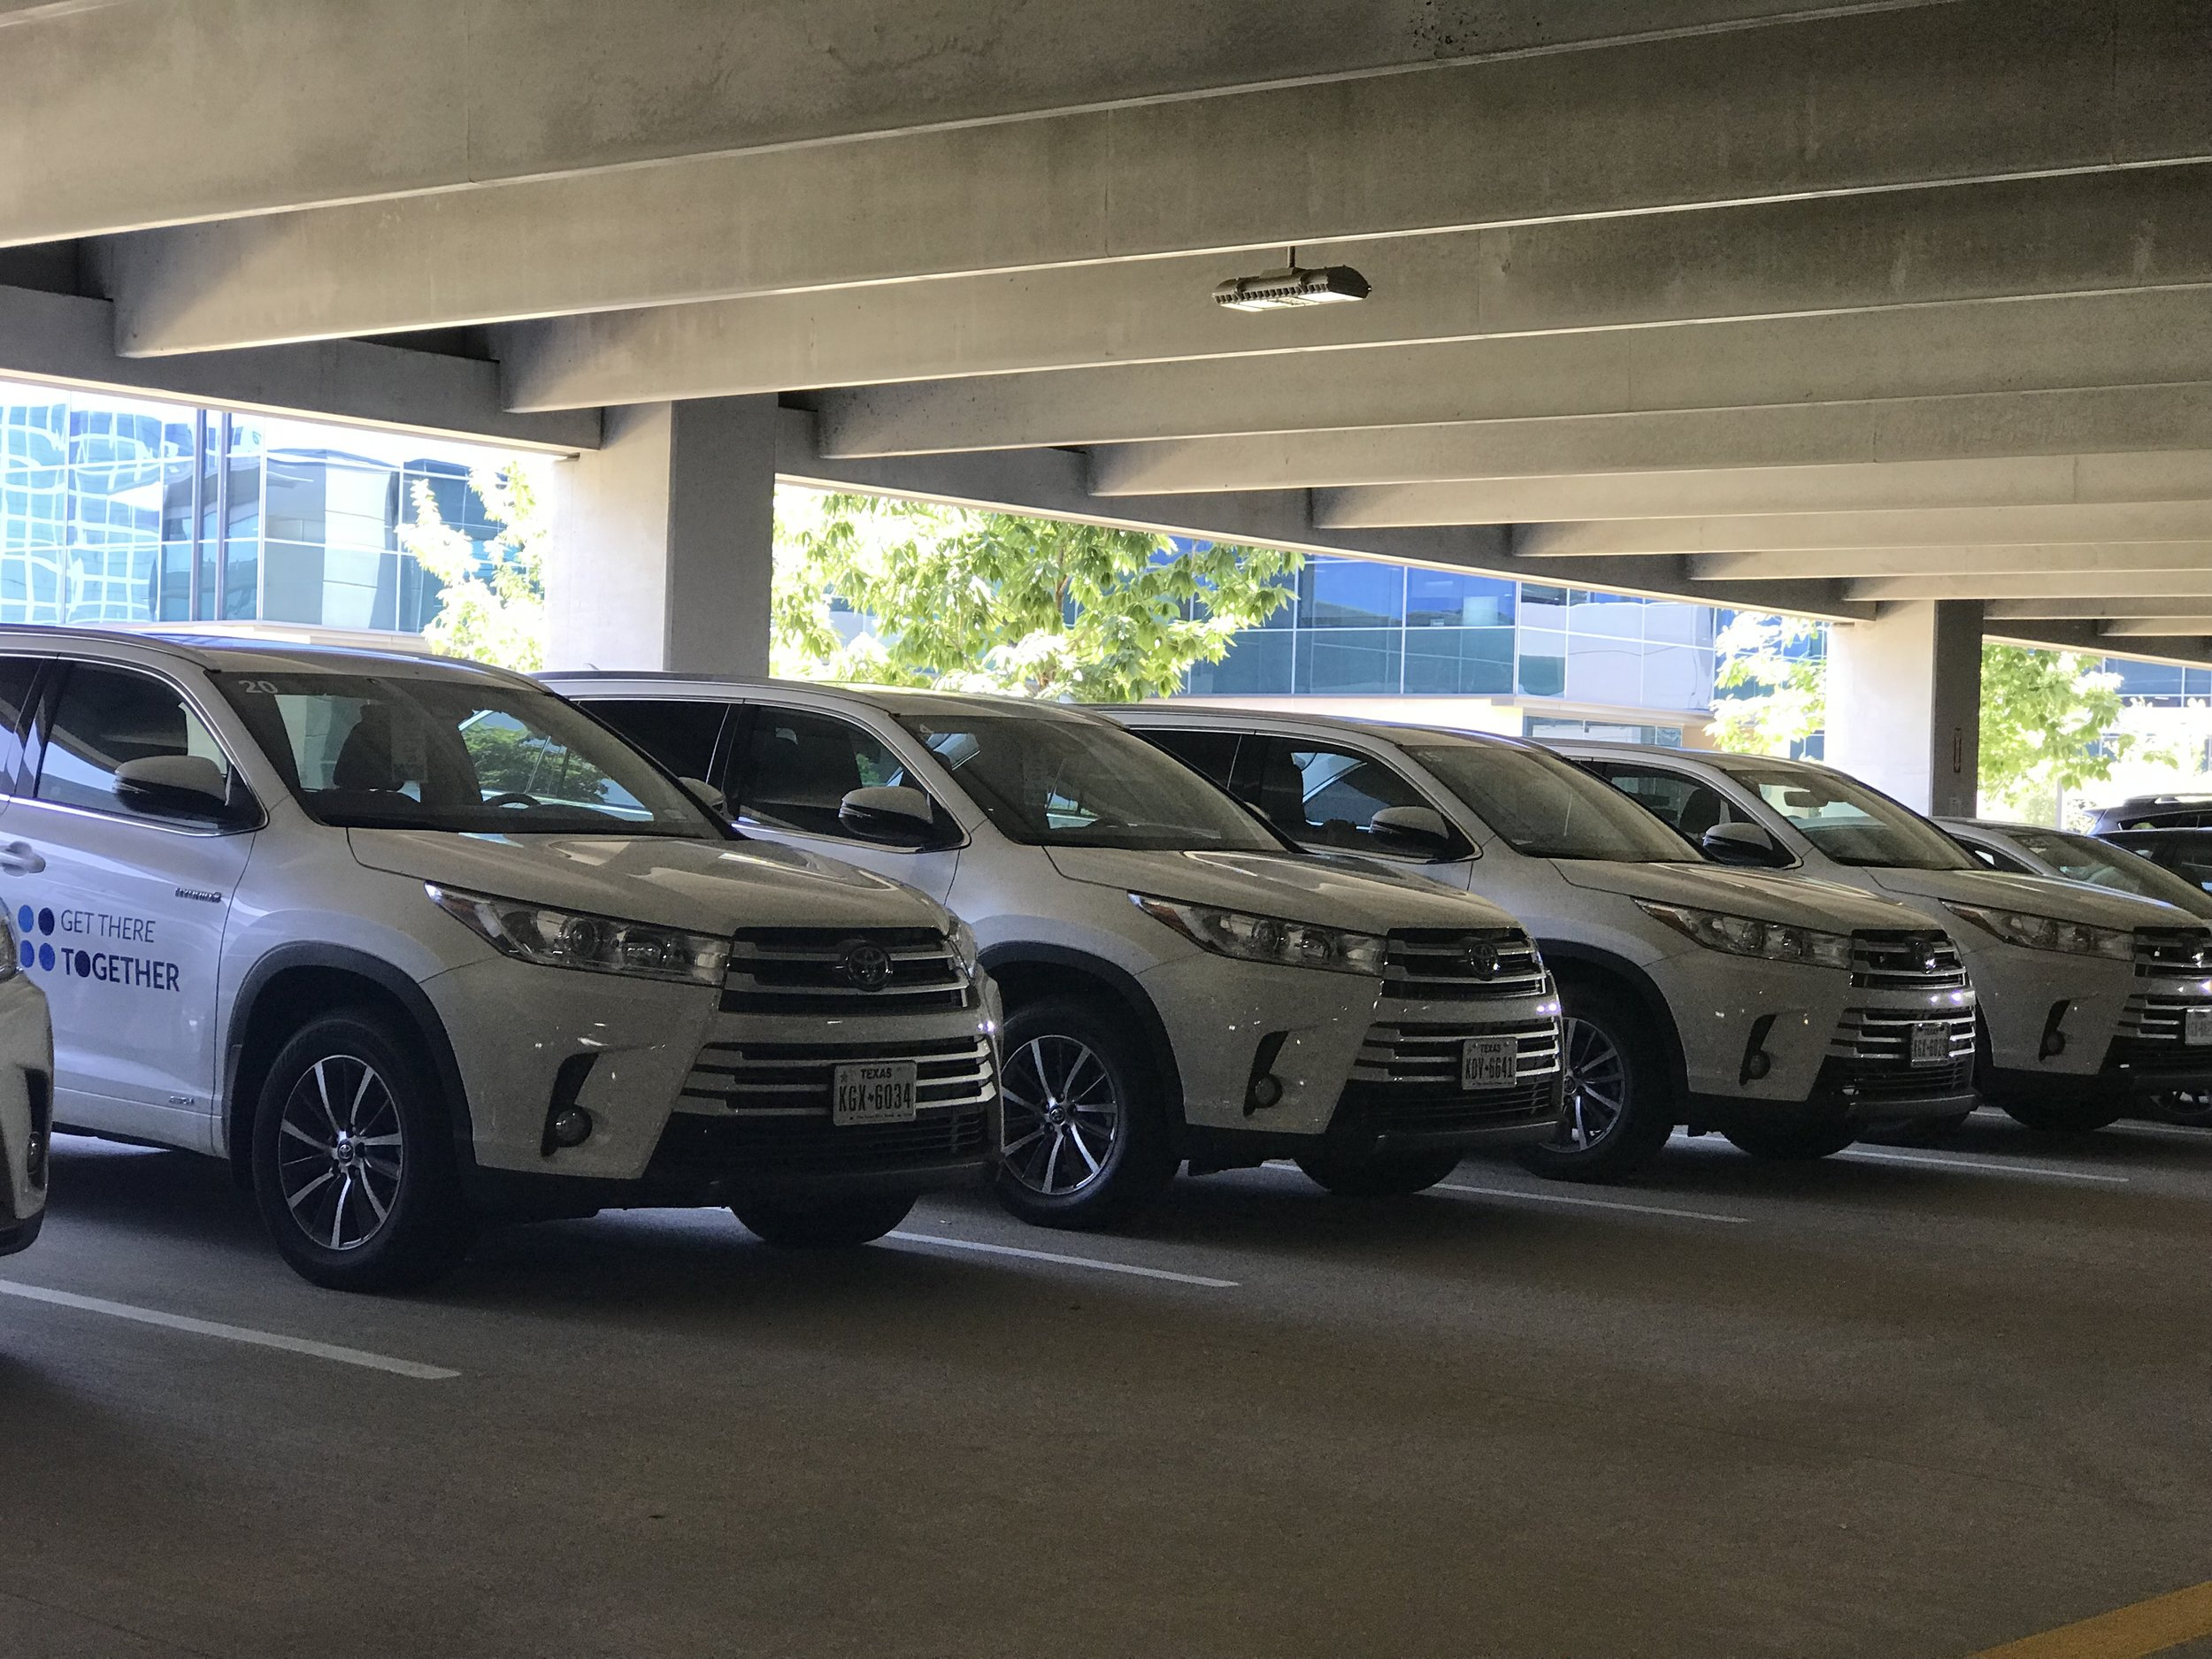 Hybrid Highlanders from the  Carma Share  fleet lining the walls of the Toyota parking garage.